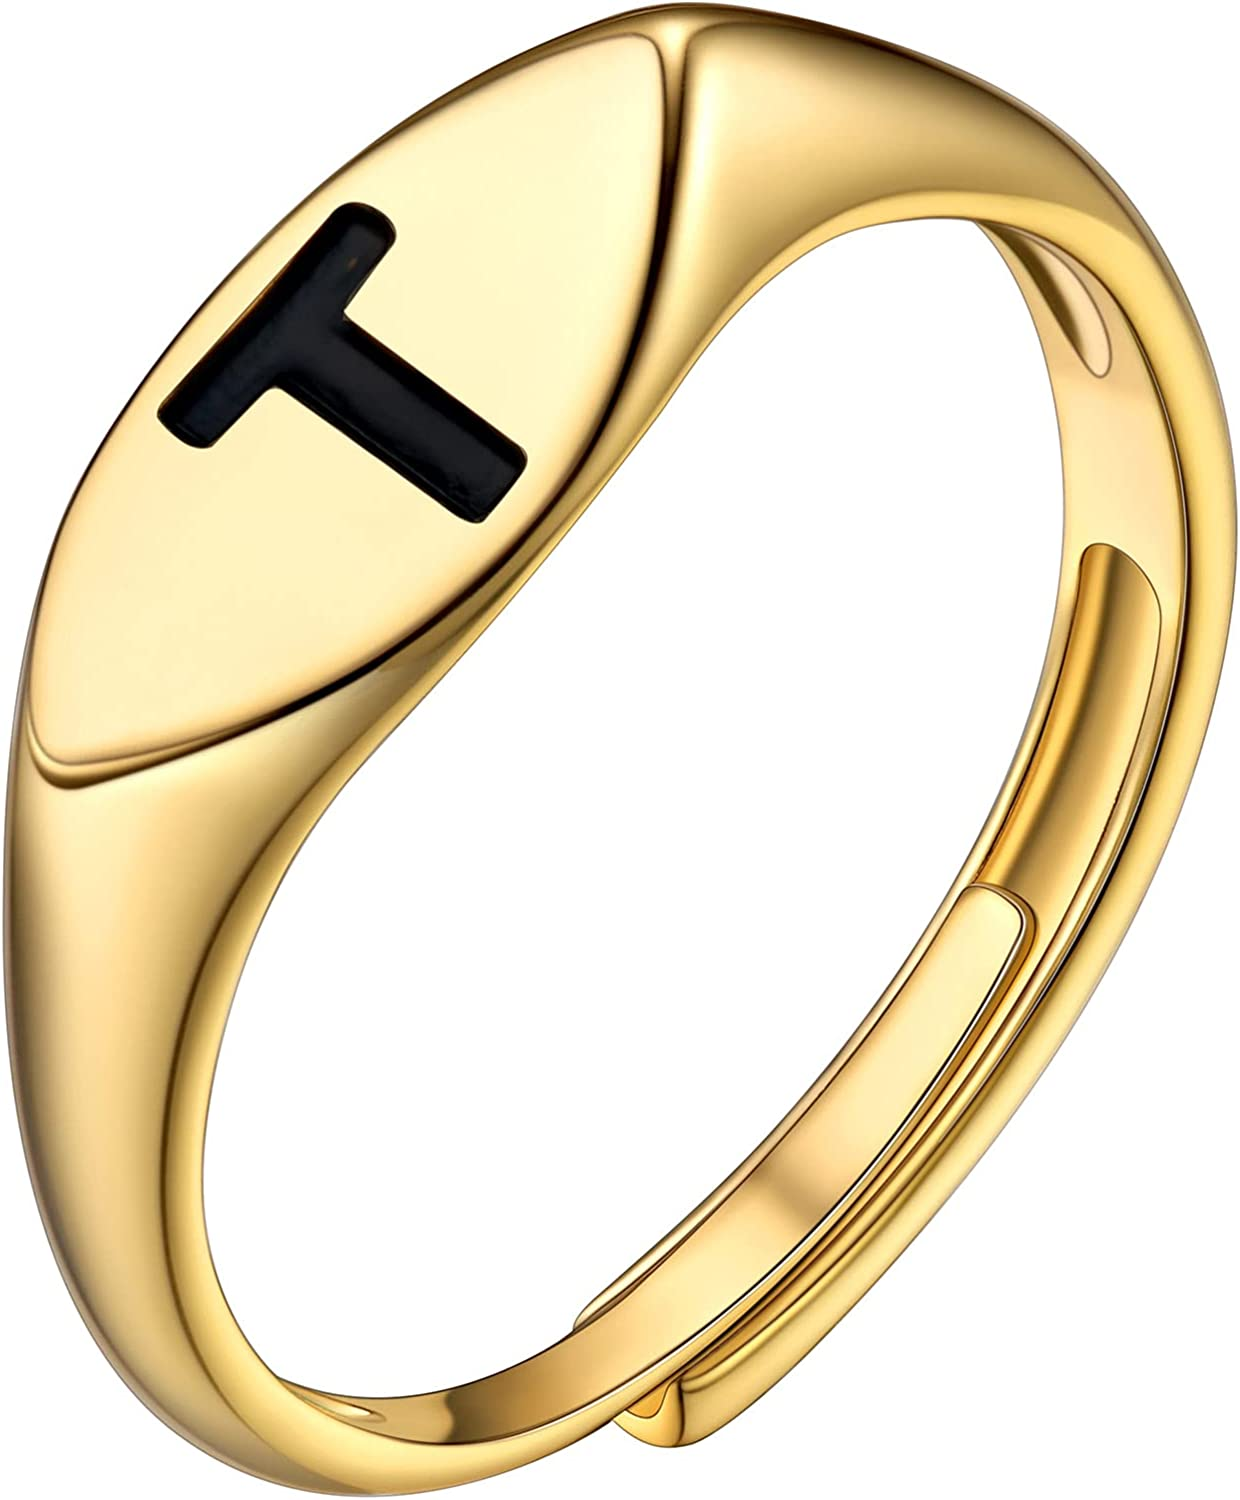 Bestyle Gold Initial Rings for Women Girls, Dainty Stackable Oval Signet Rings Engraved with Letters A-Z, Open Adjustable Open Band Rings Monogram Statement Jewelry, Available for Size #6-#12